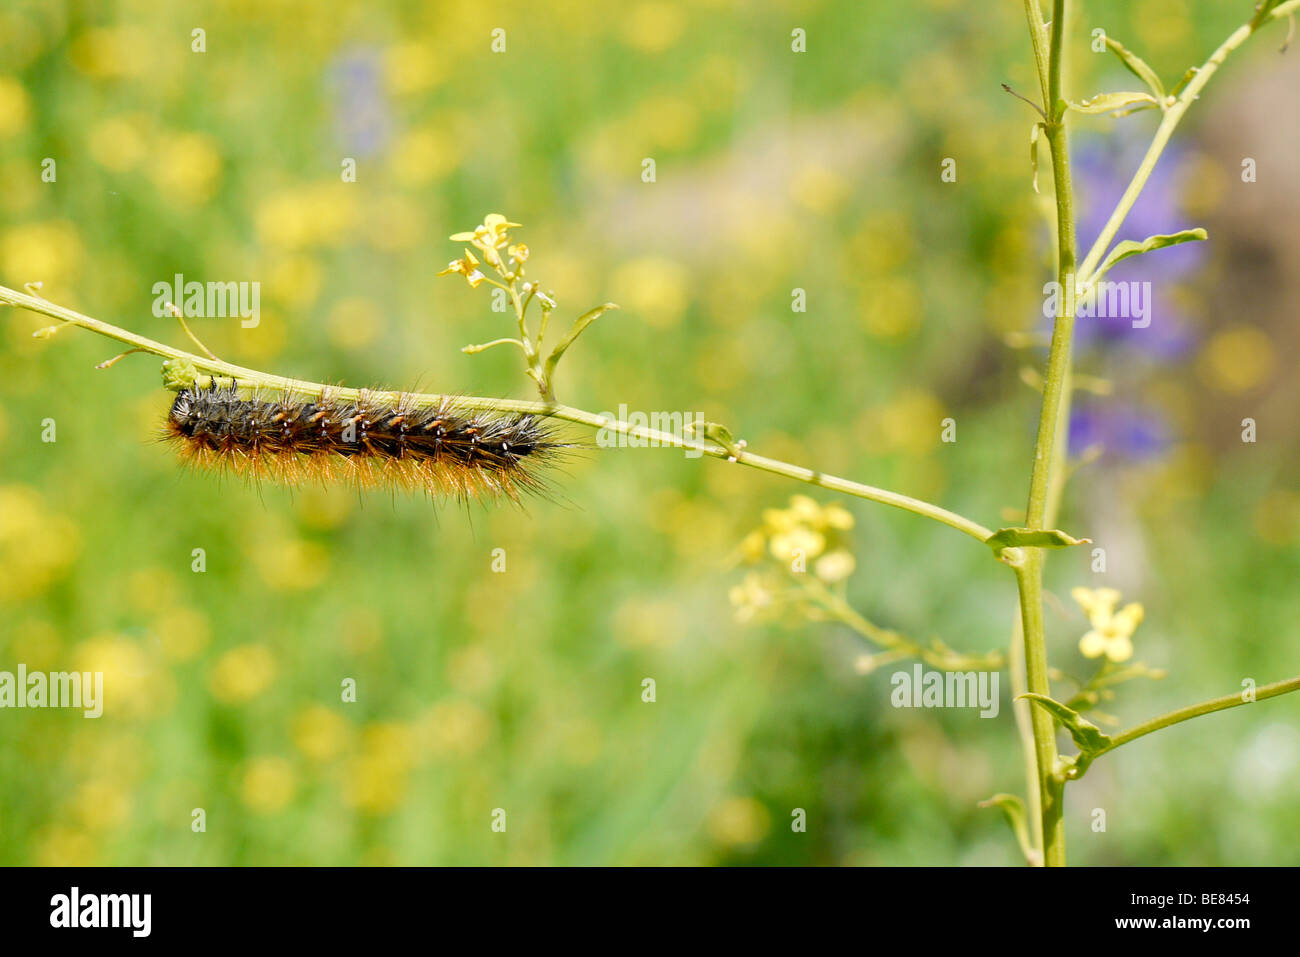 close up of a caterpillar crawling on a twig - Stock Image